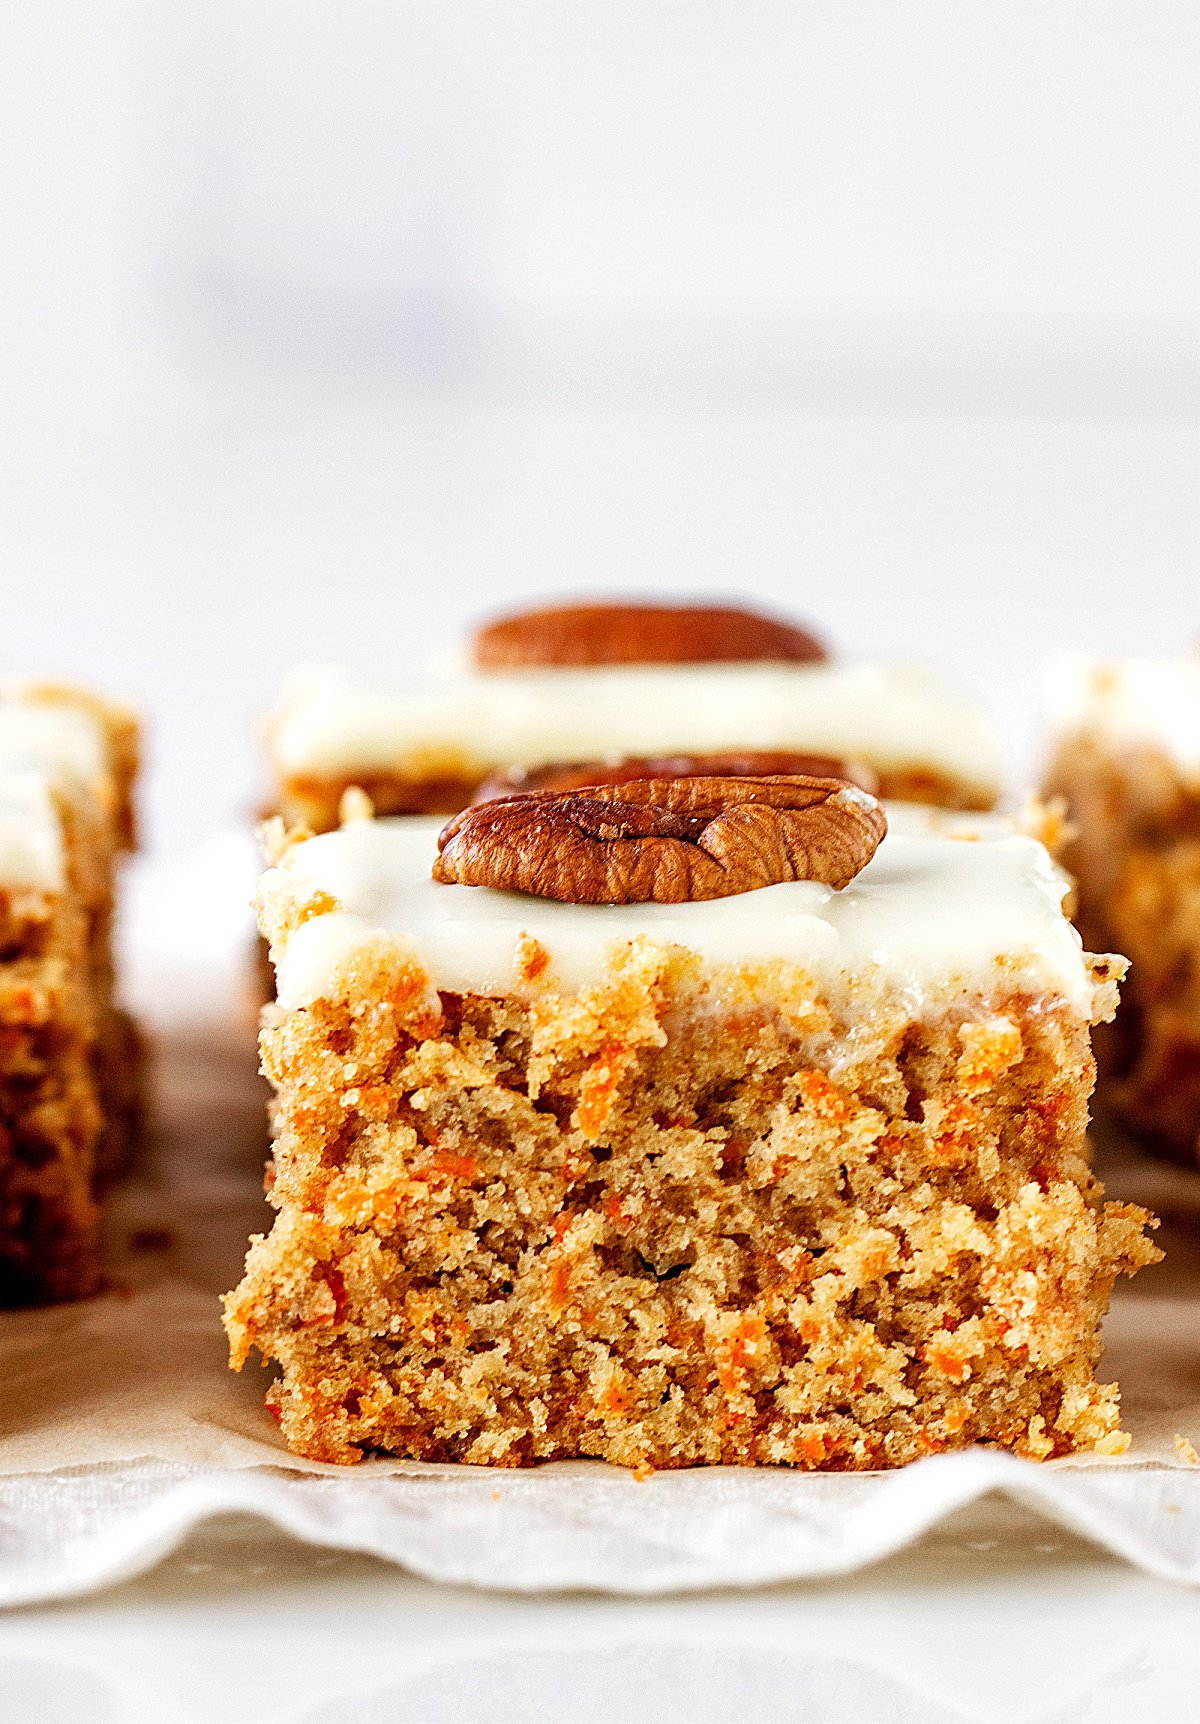 Close-up of square of frosted carrot cake with a pecan piece on a white linen